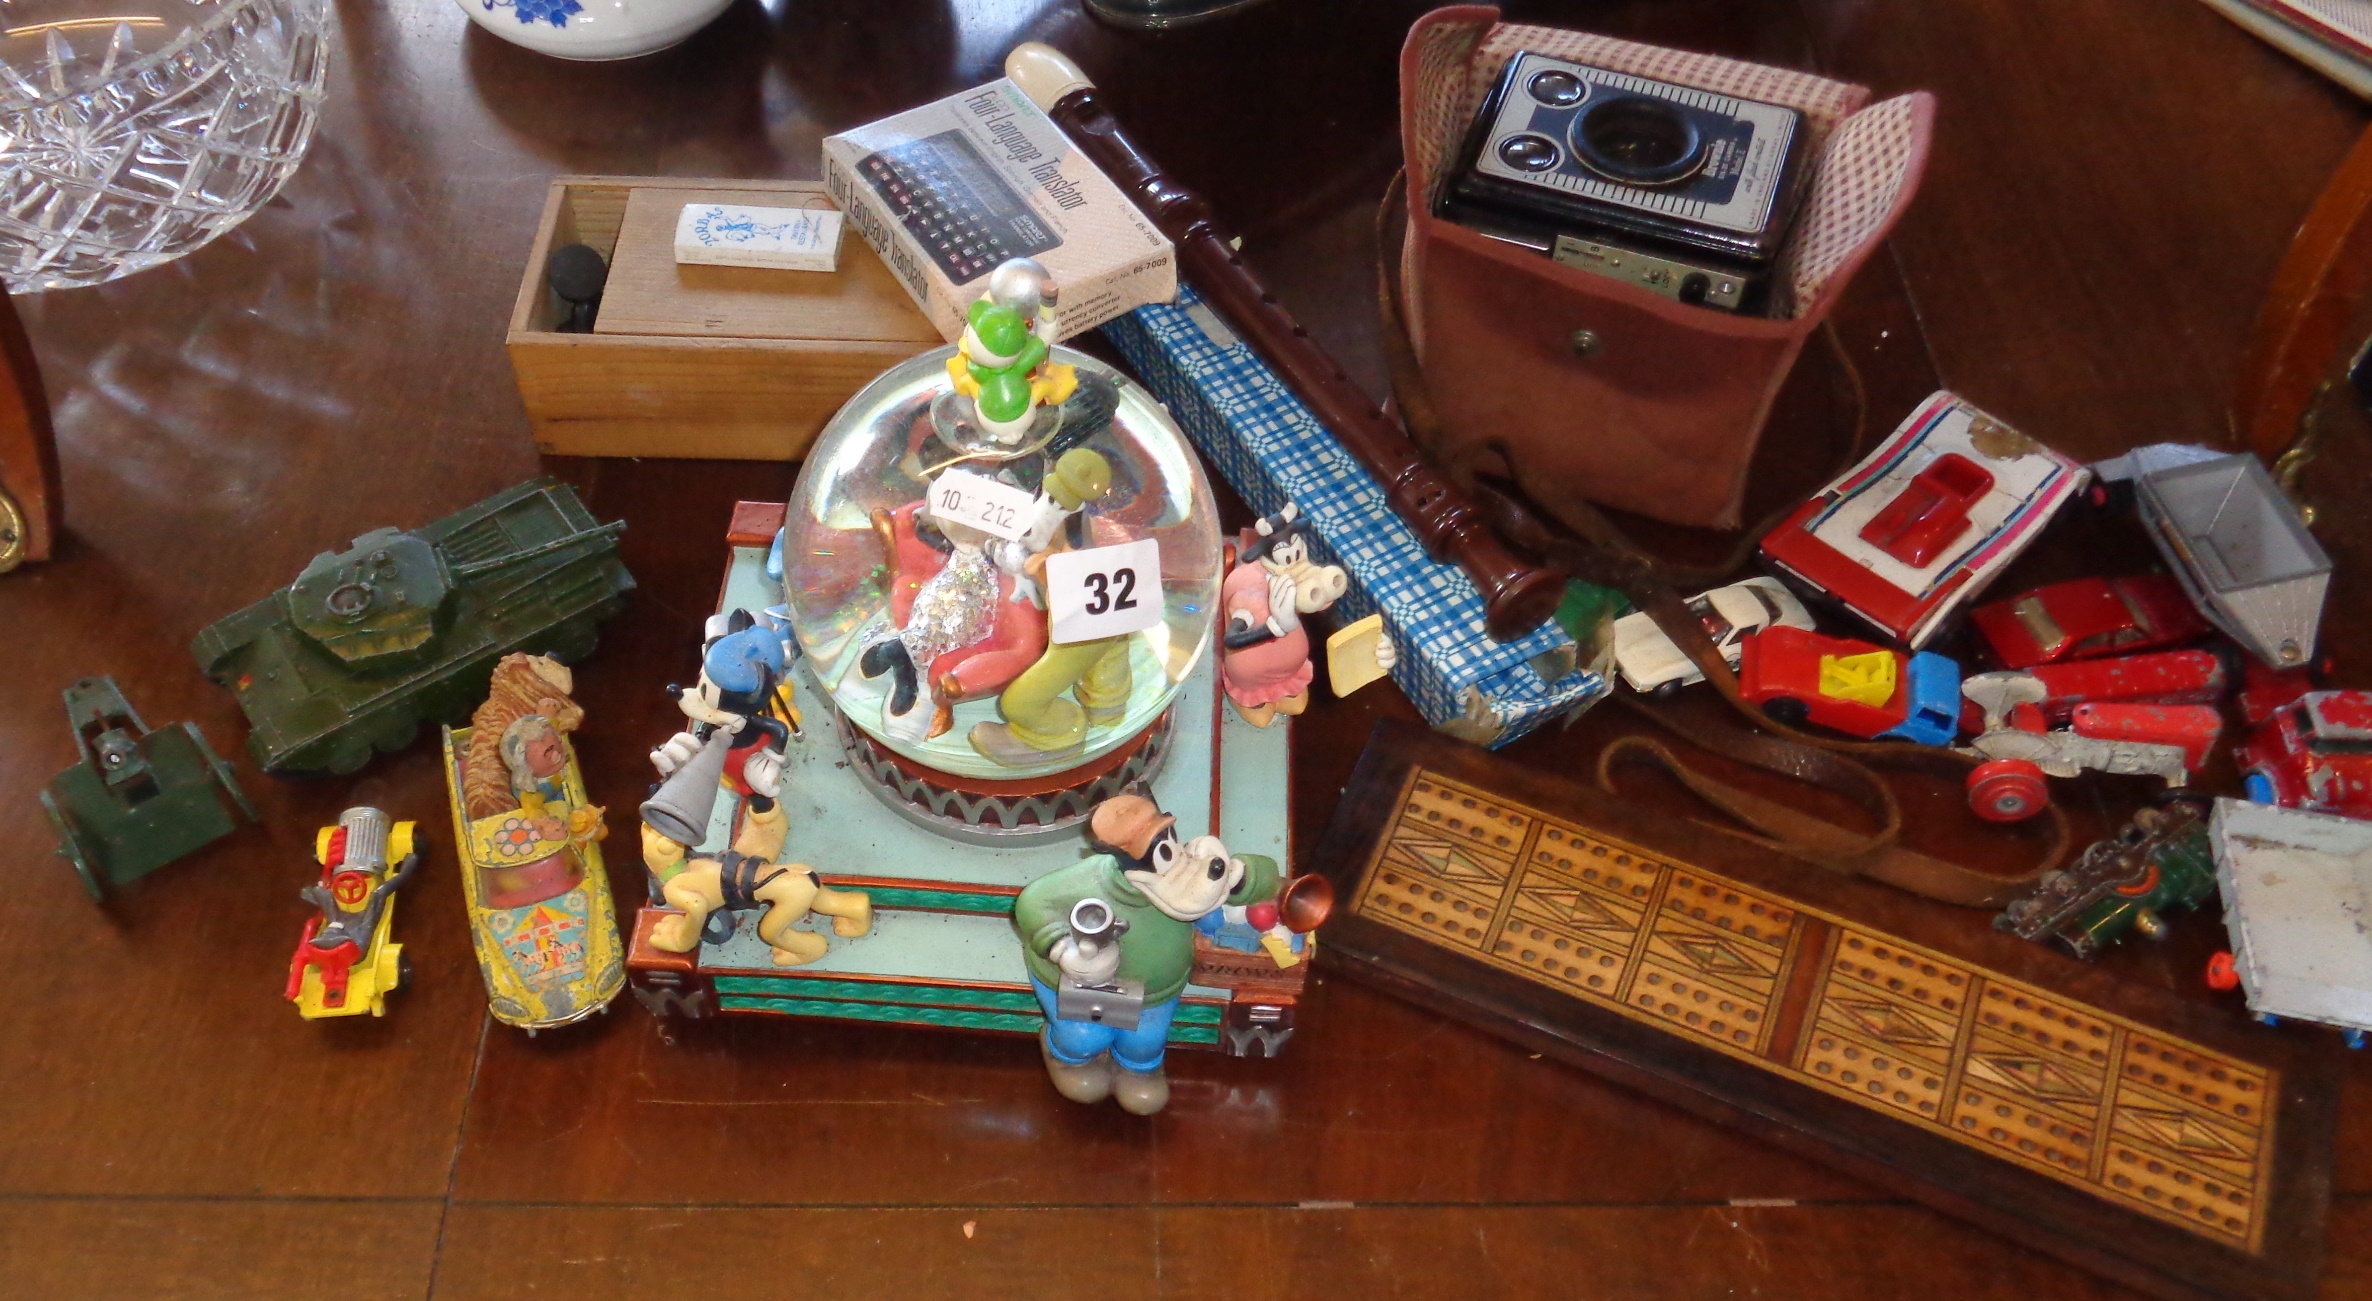 Lot 32 - Disney character musical snow globe, some diecast vehicles, a box Brownie, etc.